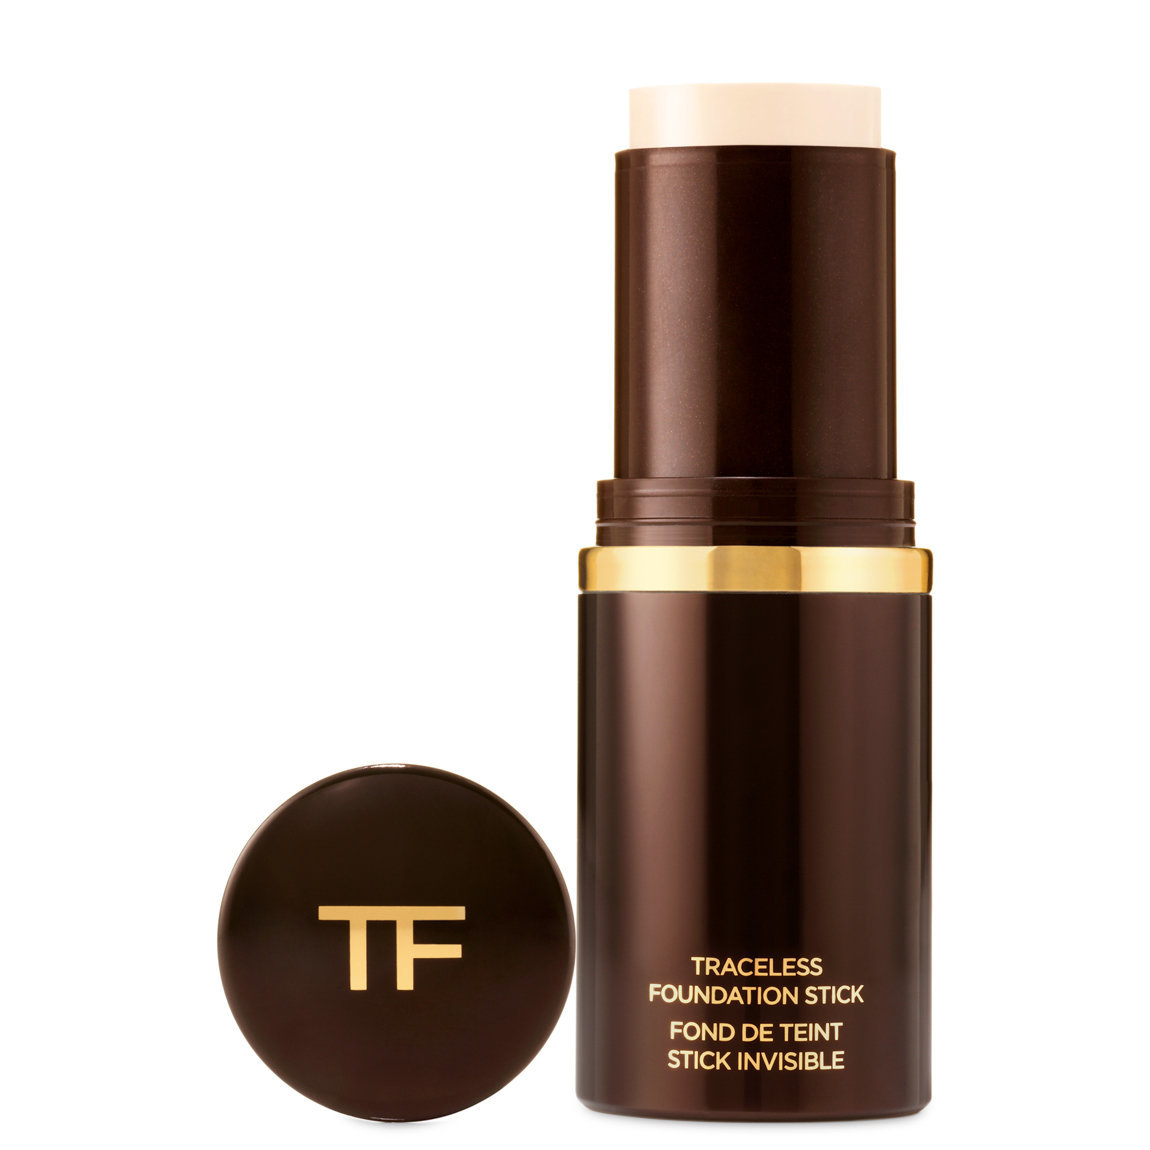 TOM FORD Traceless Stick Foundation 0.0 Pearl alternative view 1.